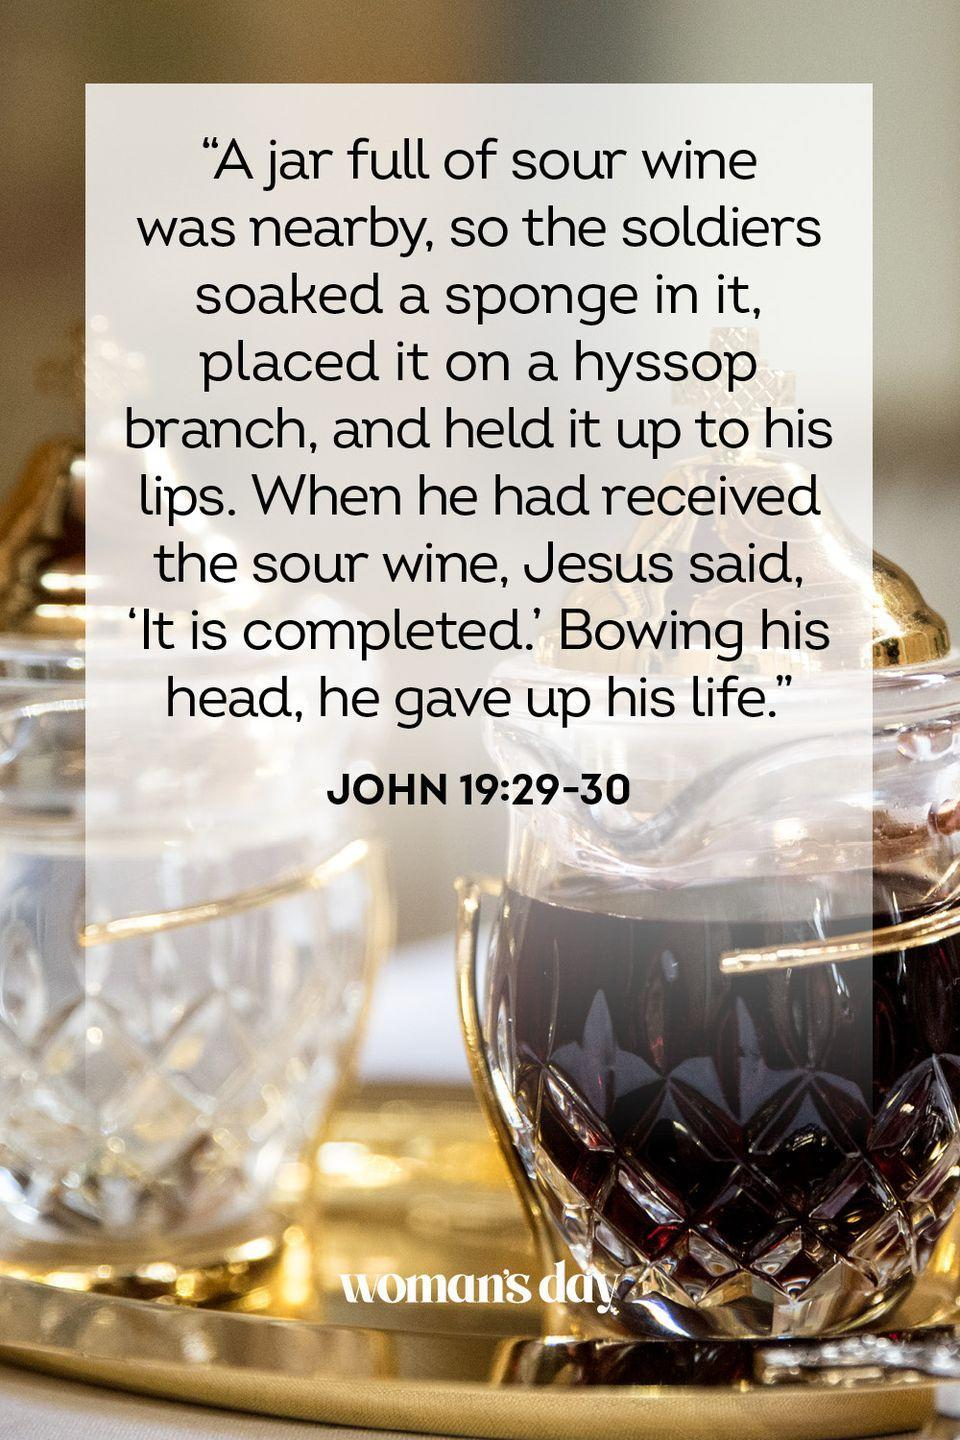 "<p>""A jar full of sour wine was nearby, so the soldiers soaked a sponge in it, placed it on a hyssop branch, and held it up to his lips. When he had received the sour wine, Jesus said, 'It is completed.' Bowing his head, he gave up his life."" — John 19:29-30</p>"